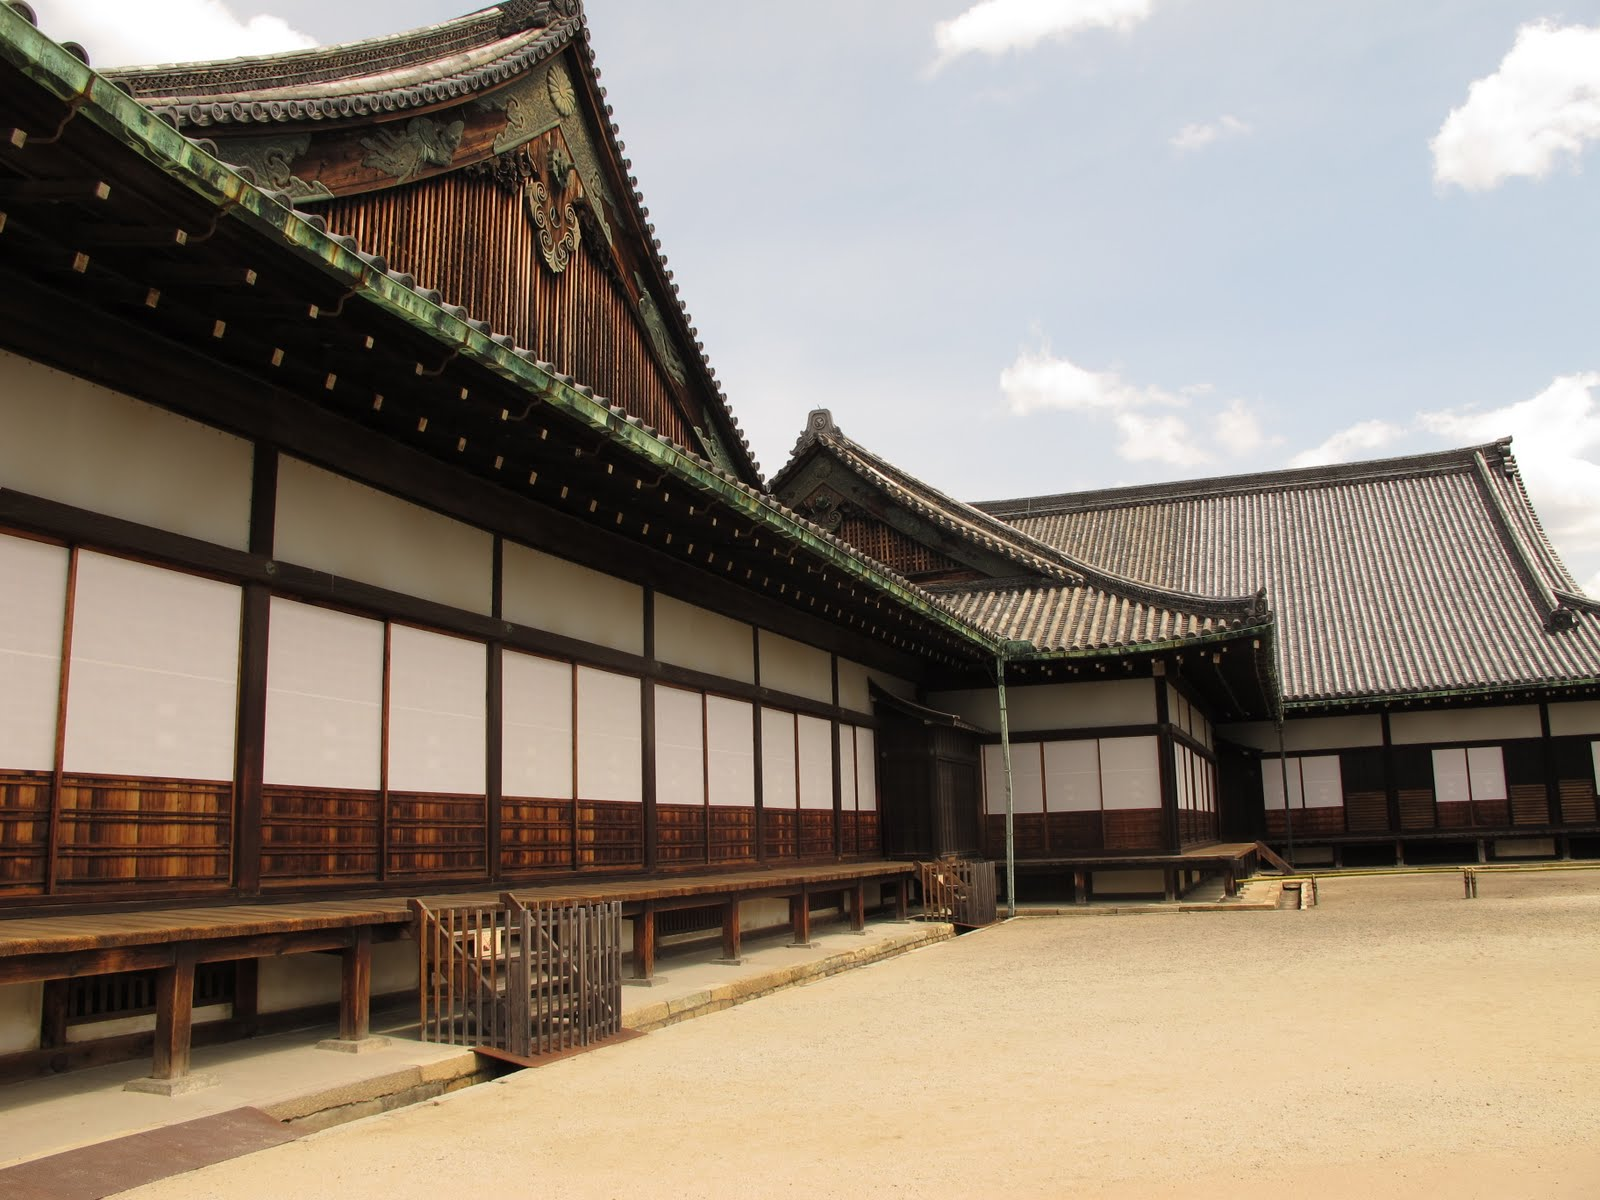 Japan Visits - Lost in Translation: Kyoto - Temples ...